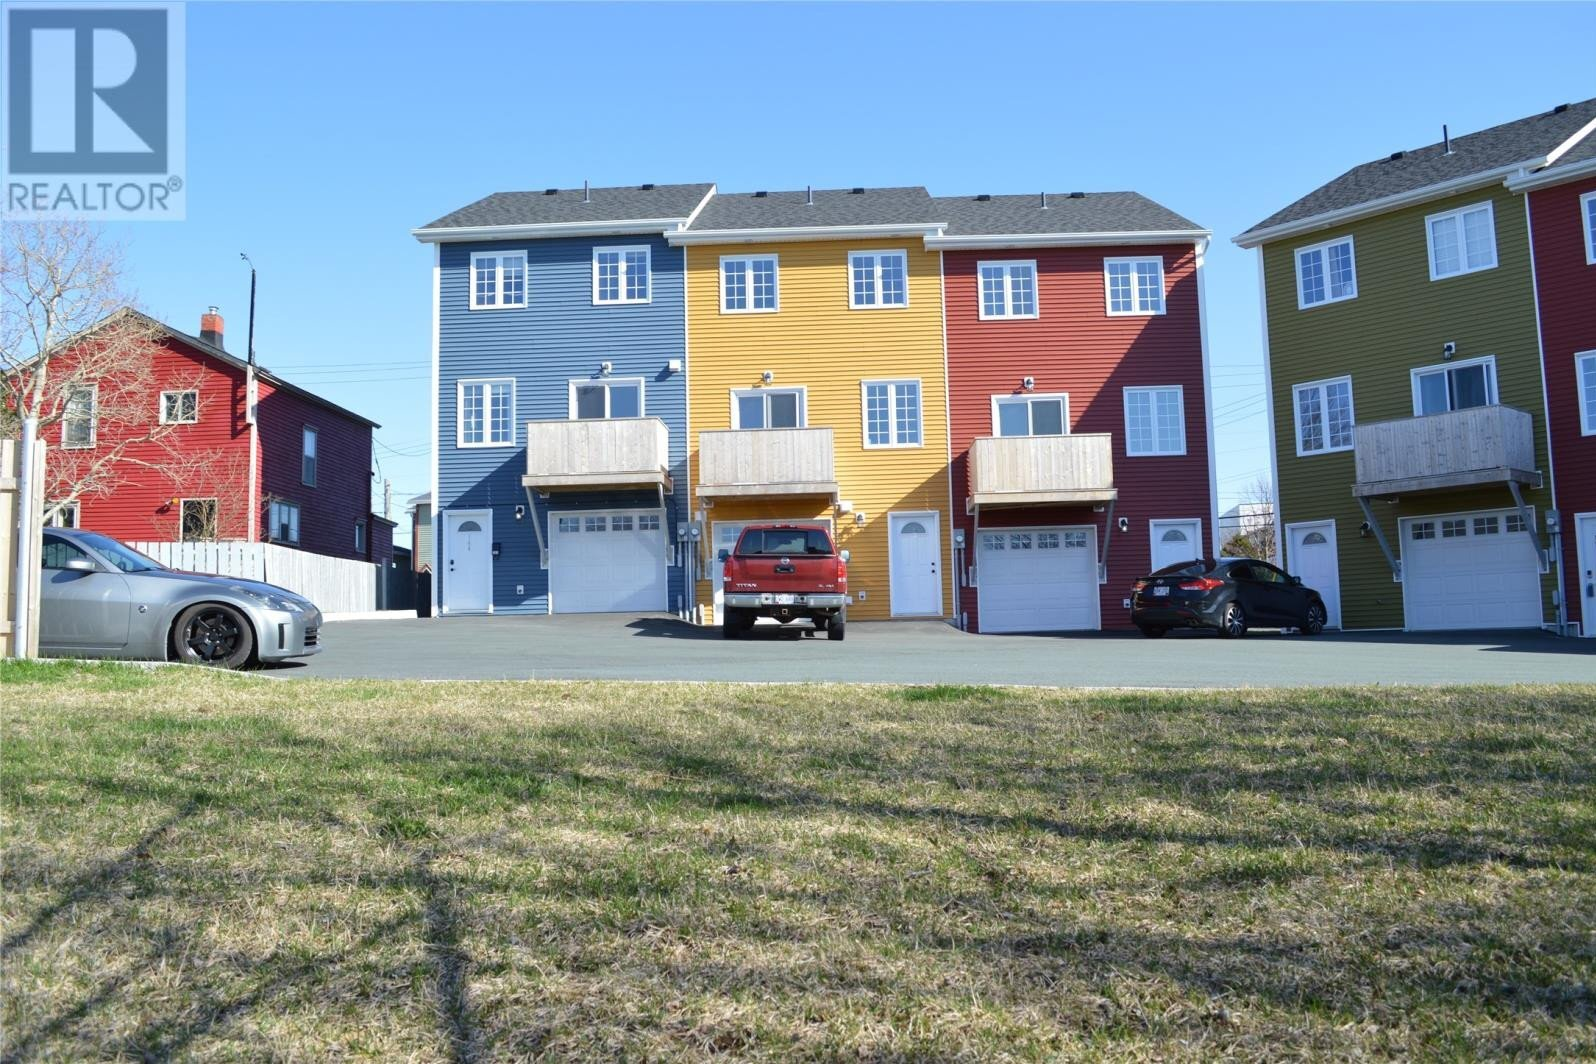 House for sale at 144 Freshwater Rd St. John's Newfoundland - MLS: 1221284